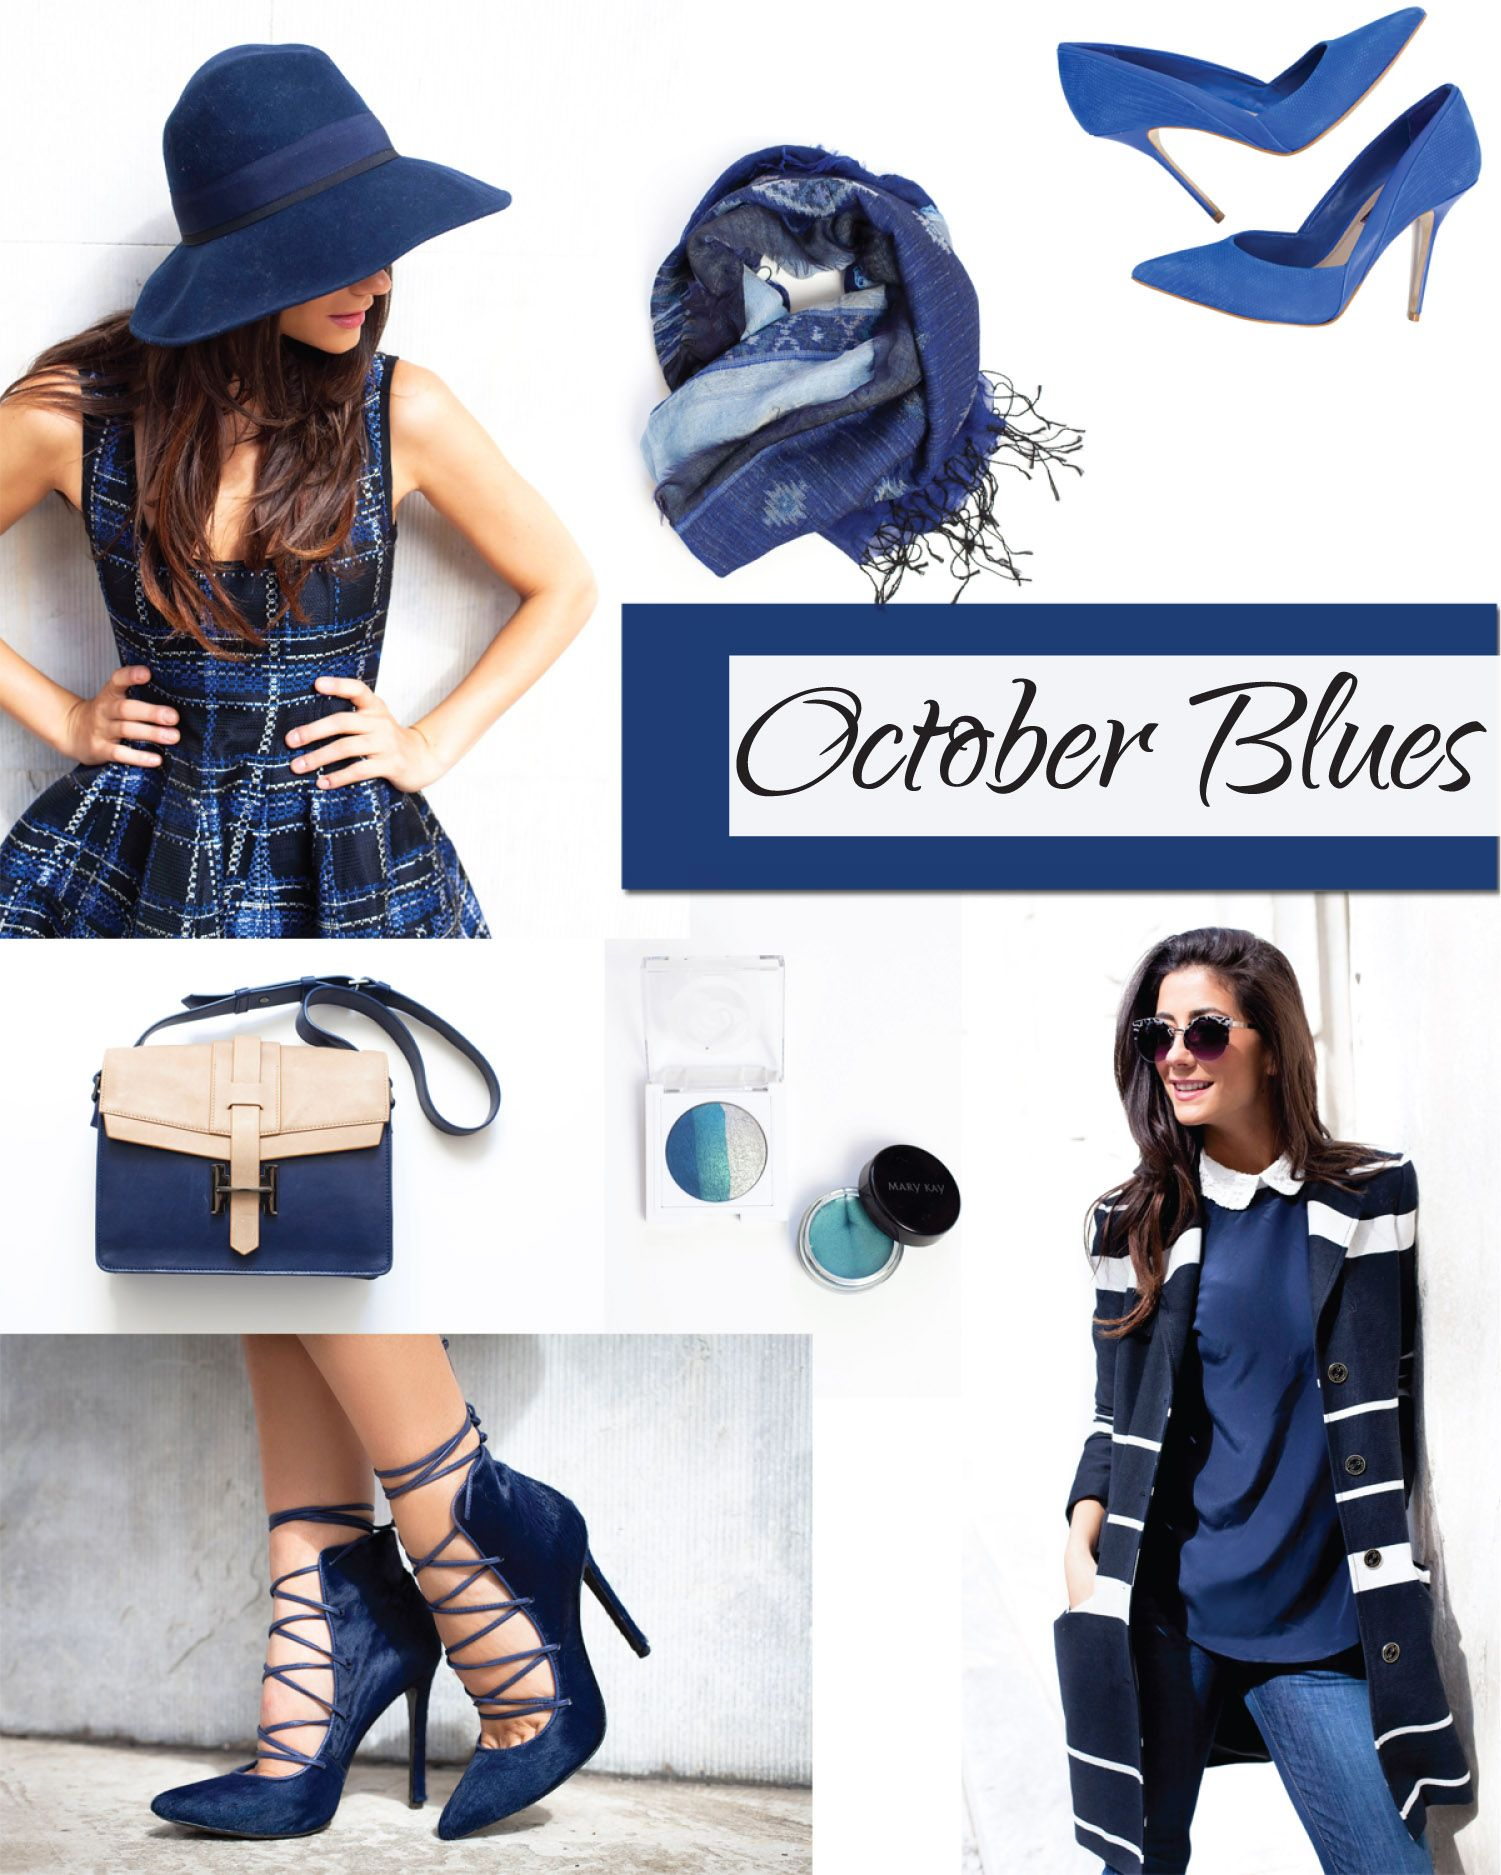 Cool, moody blues are hot for fall! Wear it head-to-toe or color your lids to make your eyes pop. Here are my top #bloggerpicks for October! #mktrend